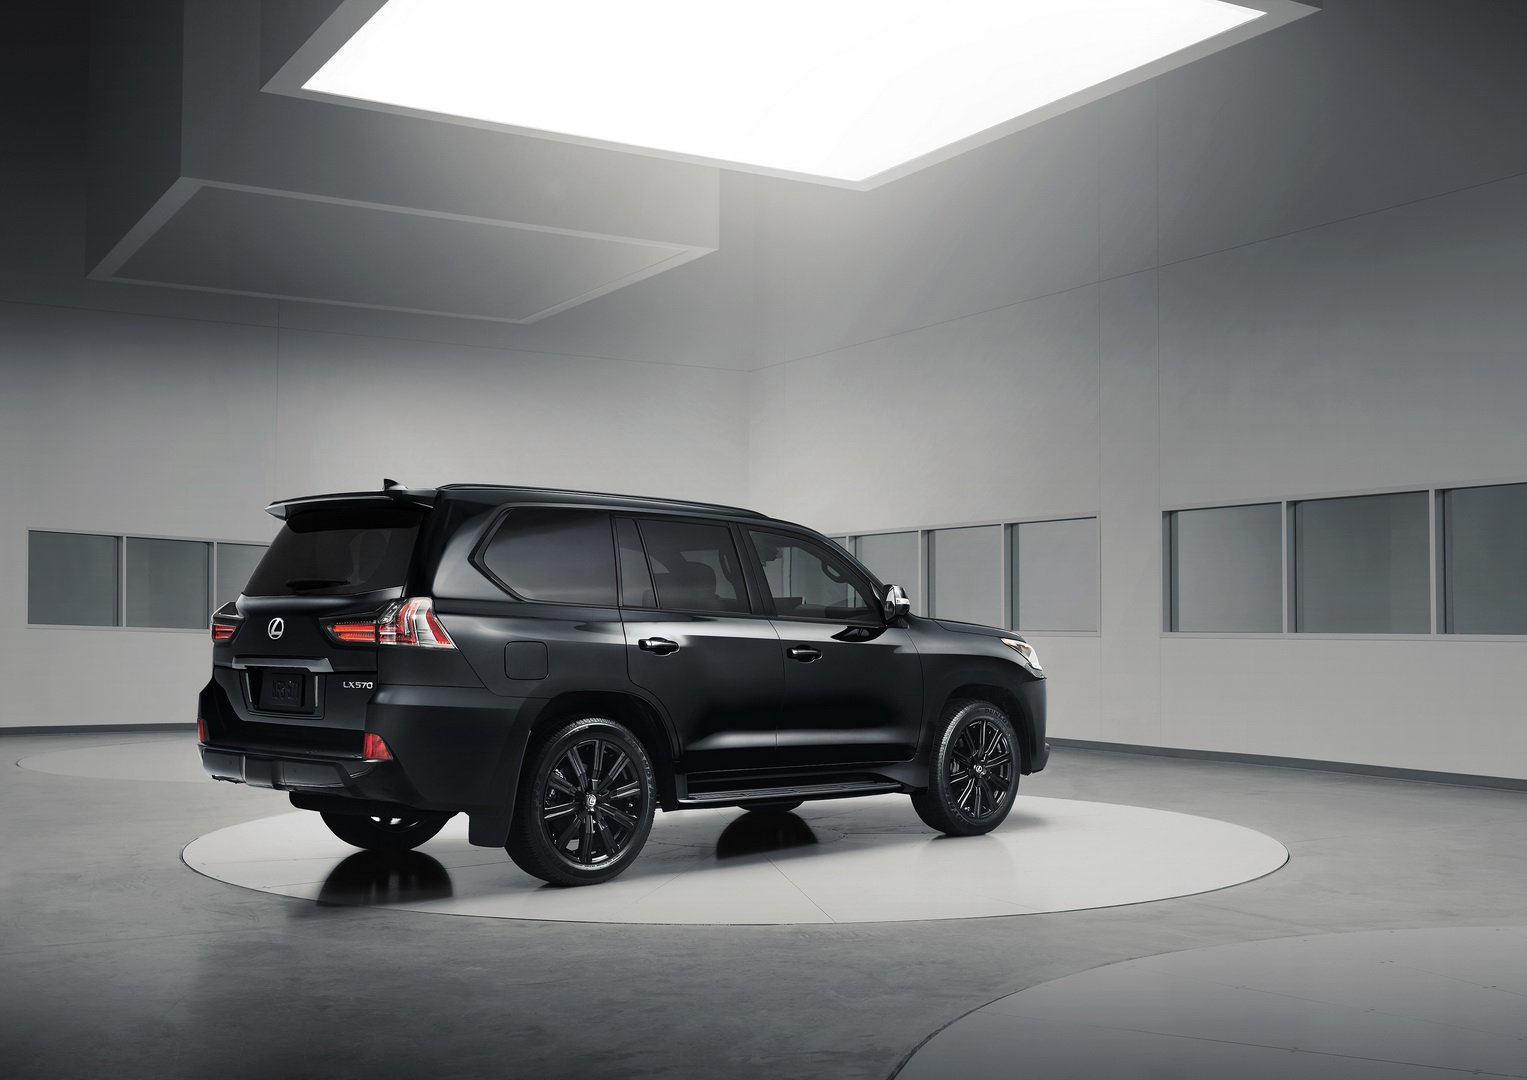 Lexus LX Inspiration Series (4)